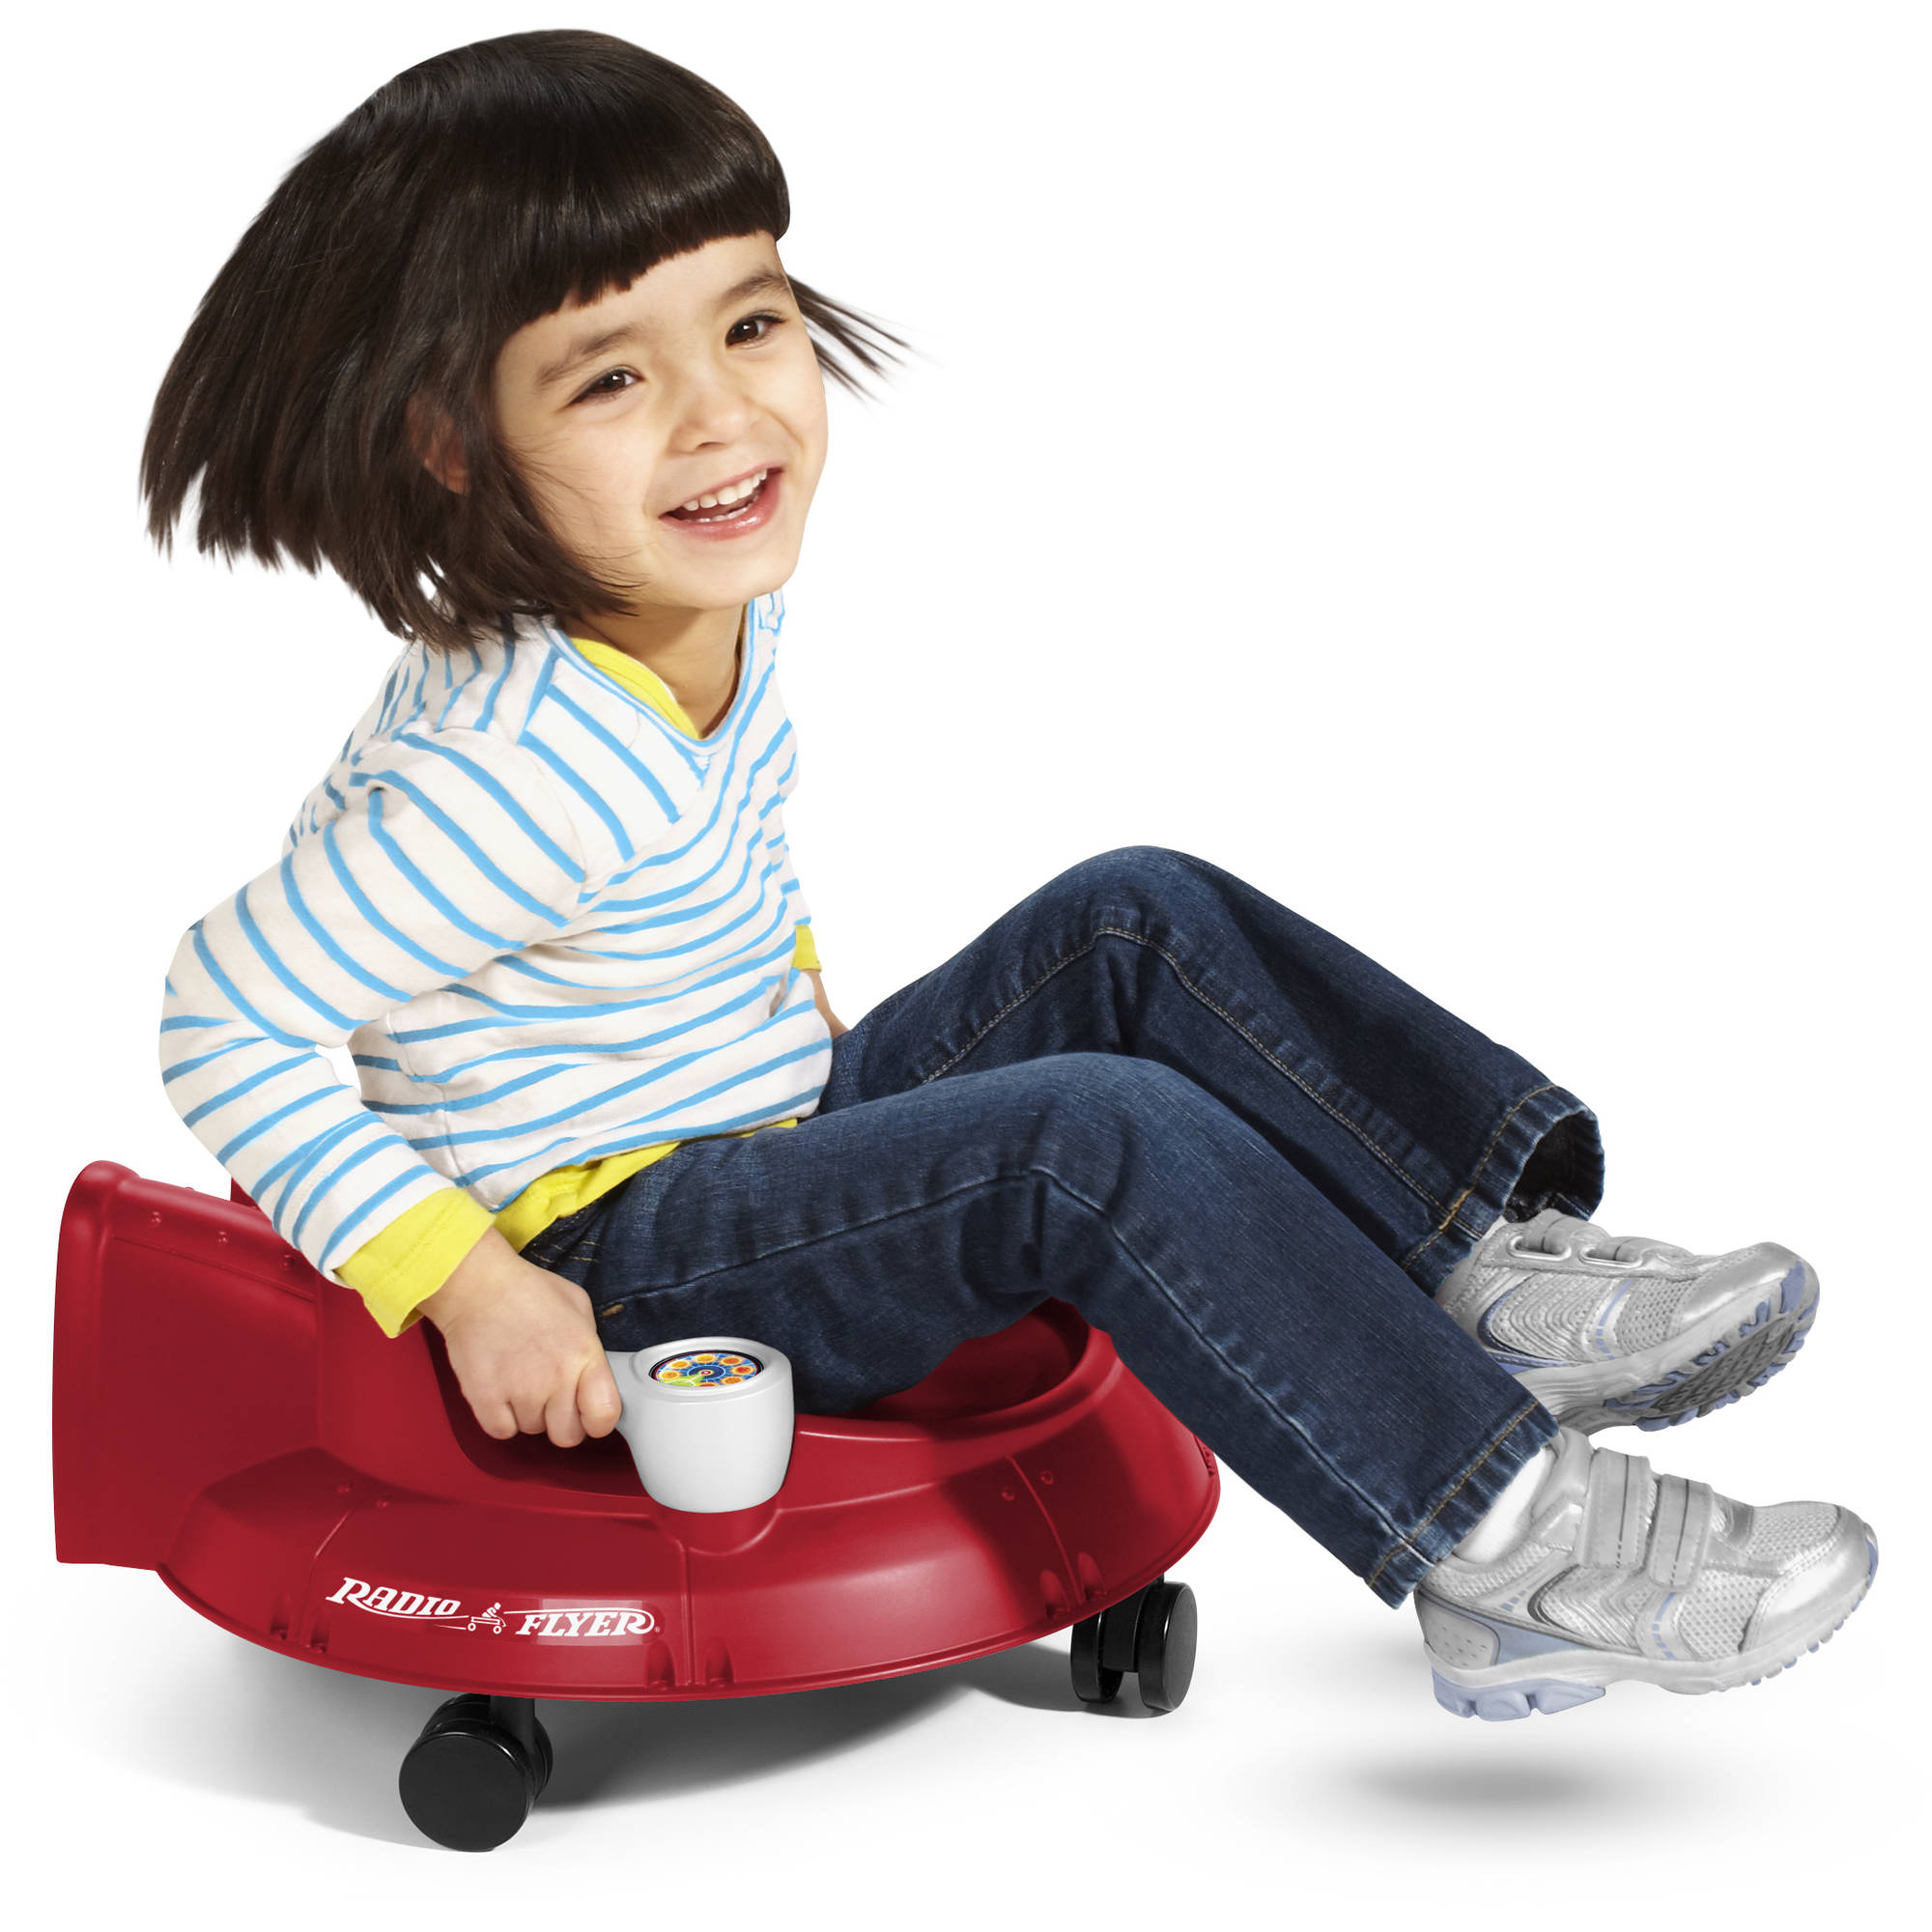 Radio Flyer Spin 'N' Saucer, Red